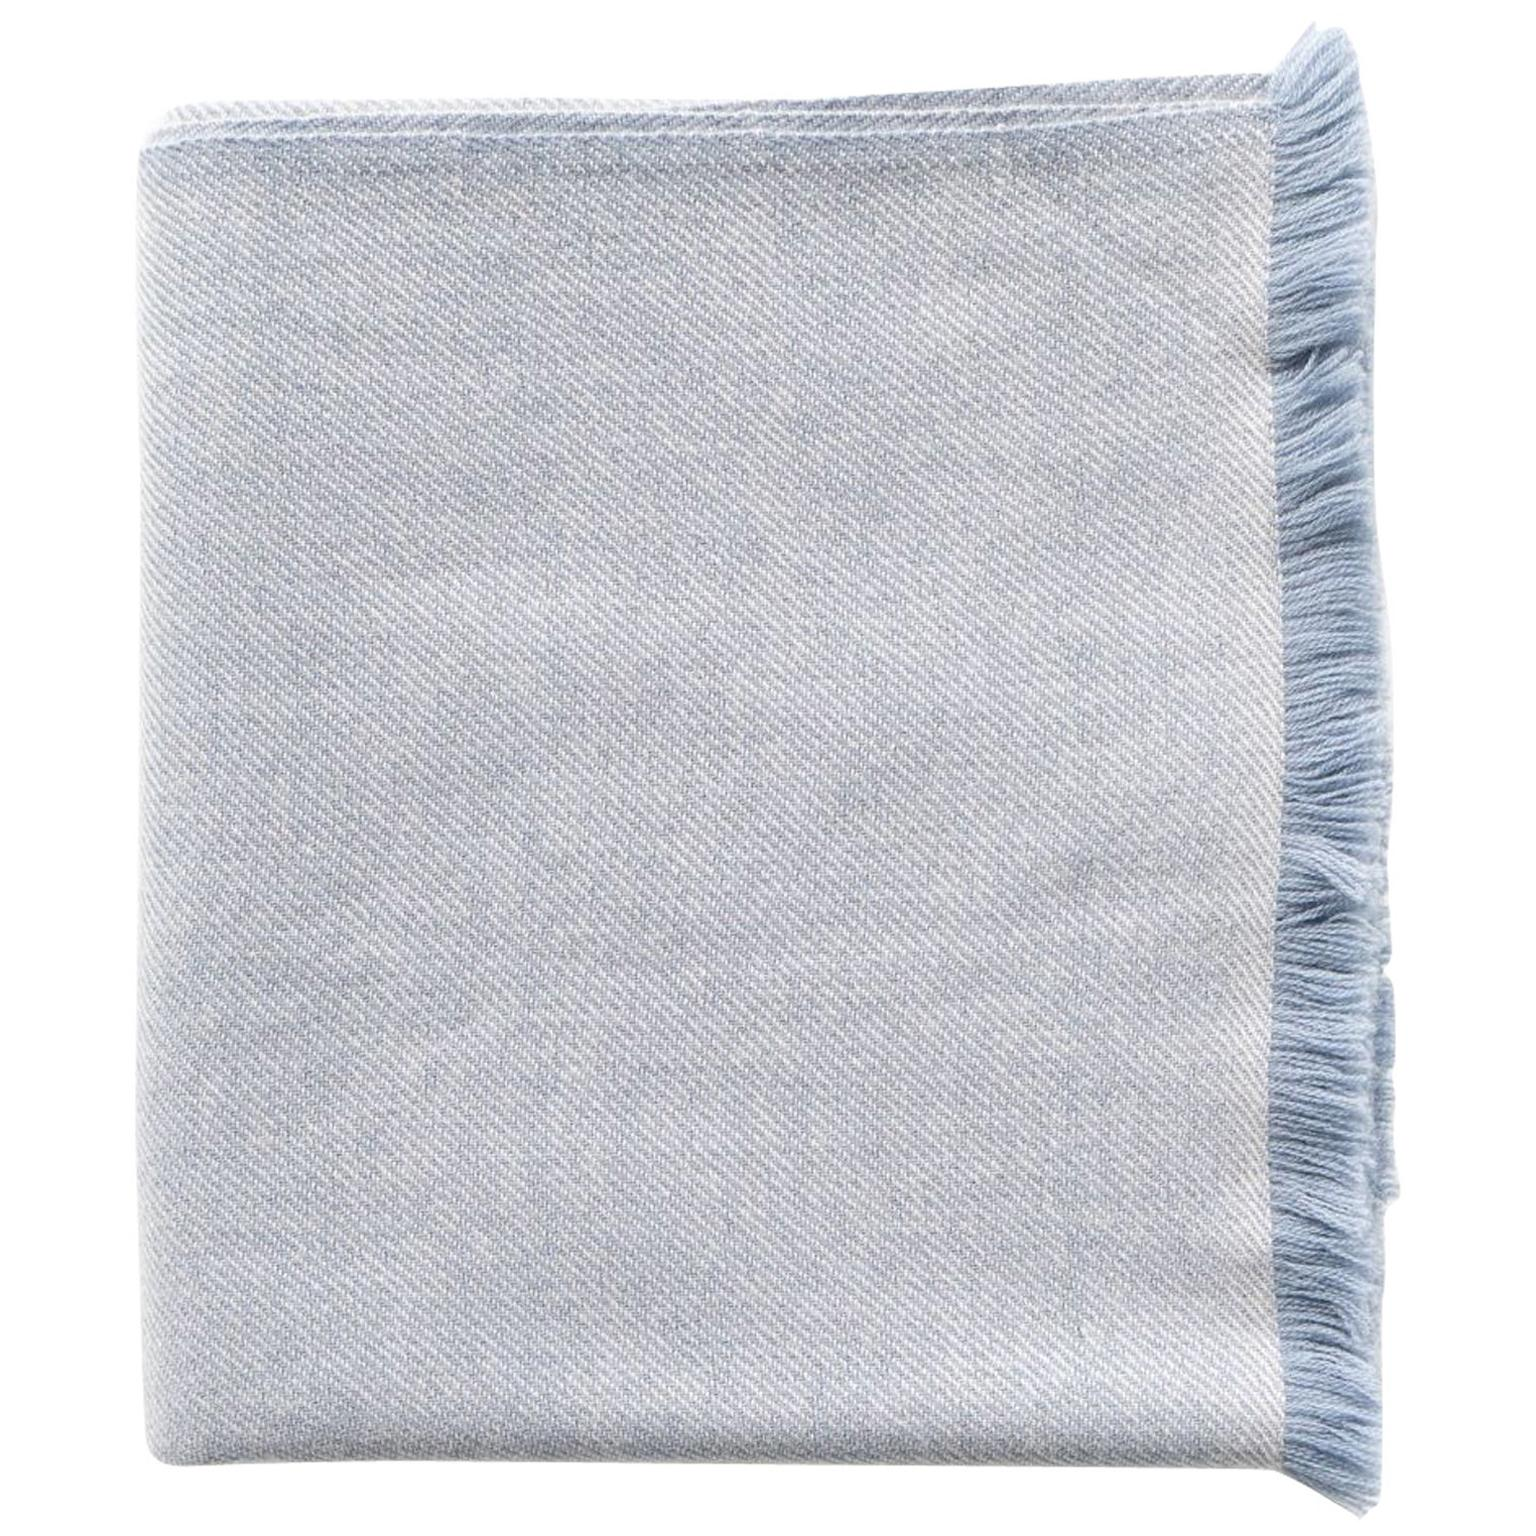 Boro Blue Shade King Size Bedspread / Coverlet Handwoven in Soft Merino